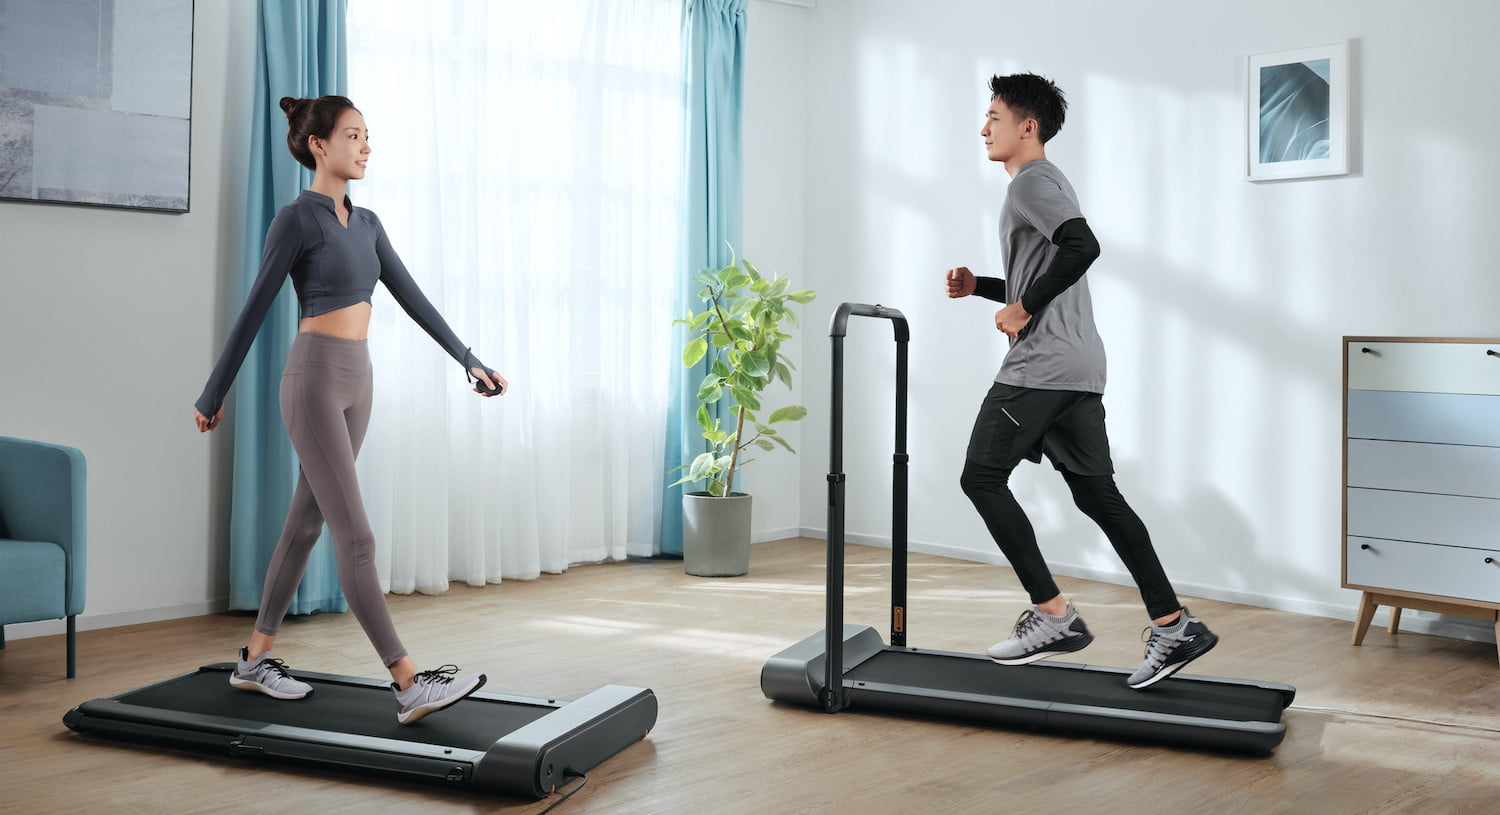 Exercise while working at your desk with the foldable WalkingPad R1 treadmill